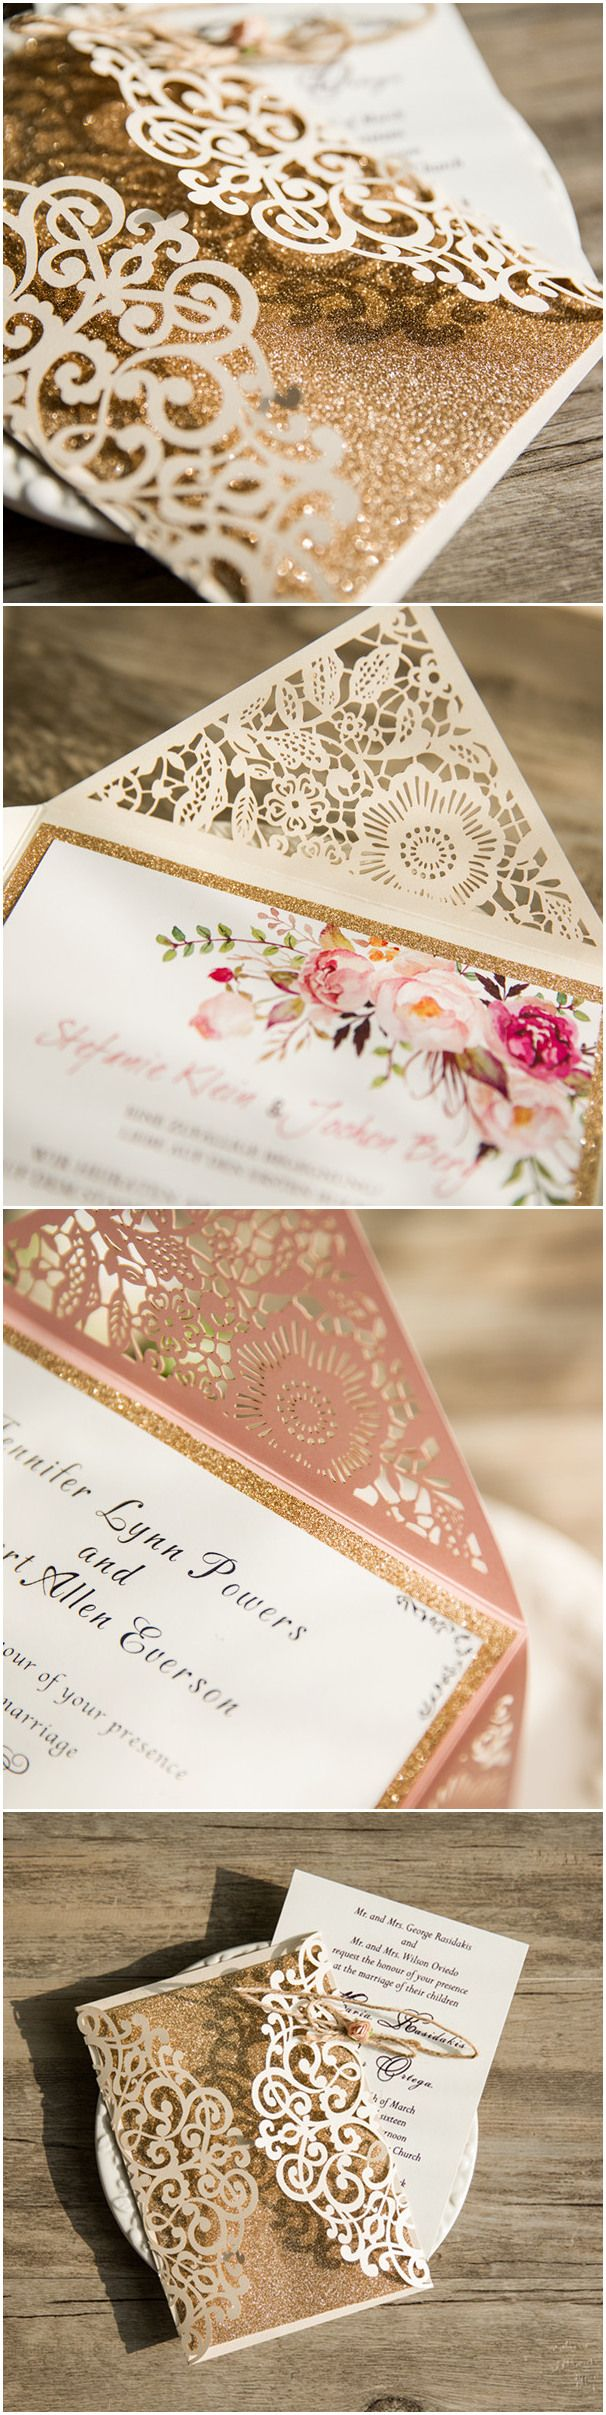 Best 25+ Laser cut invitation ideas on Pinterest | Laser cut ...